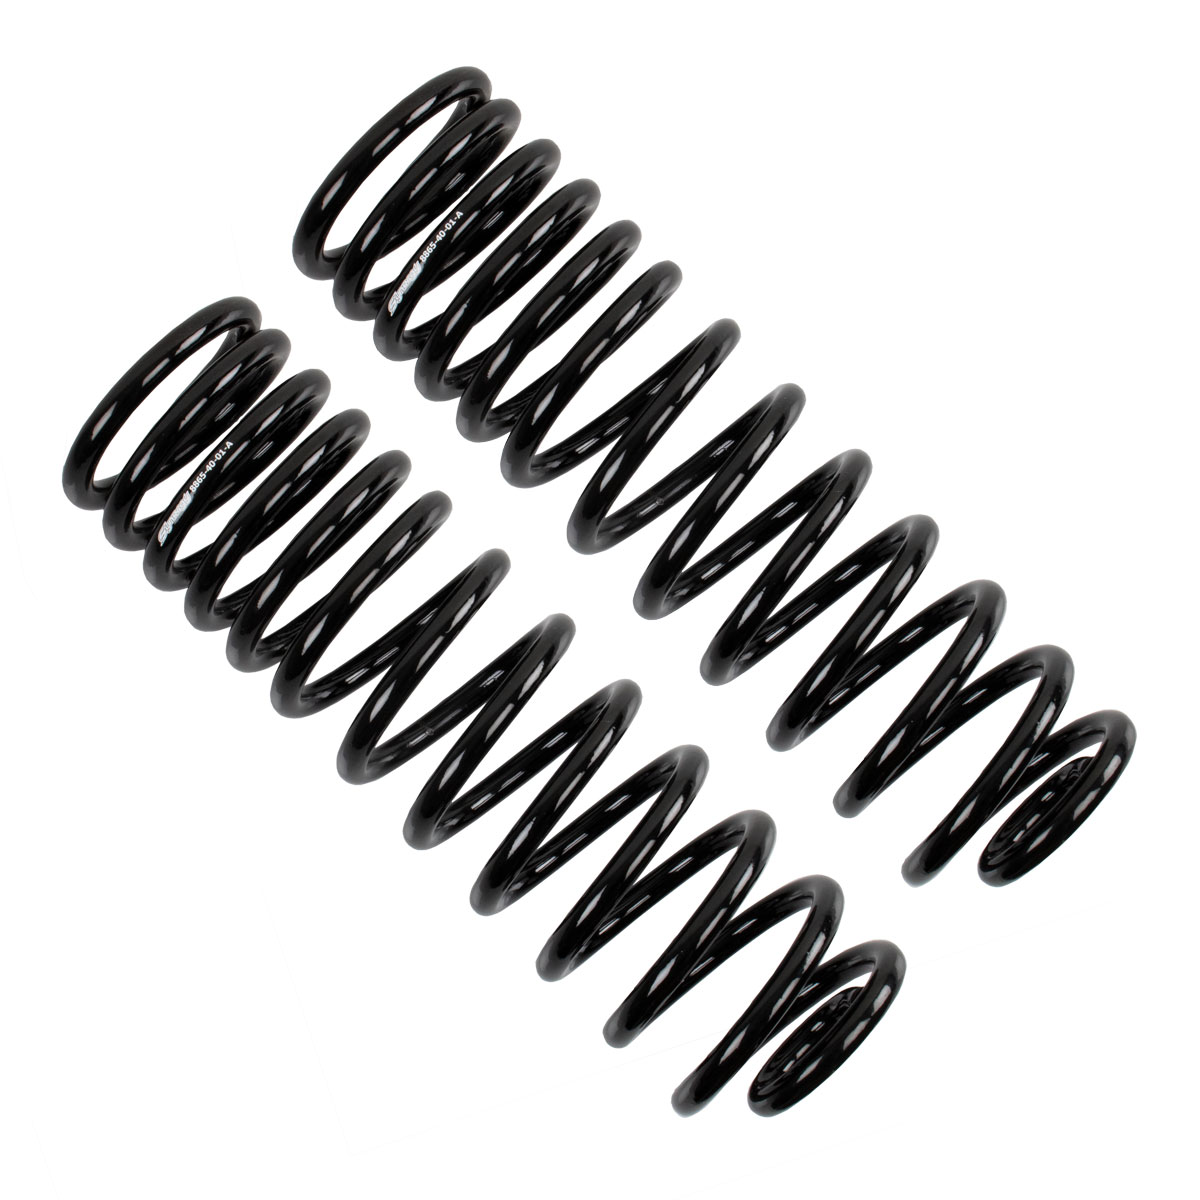 Synergy Jeep JT Gladiator Rear Lift Coil Springs